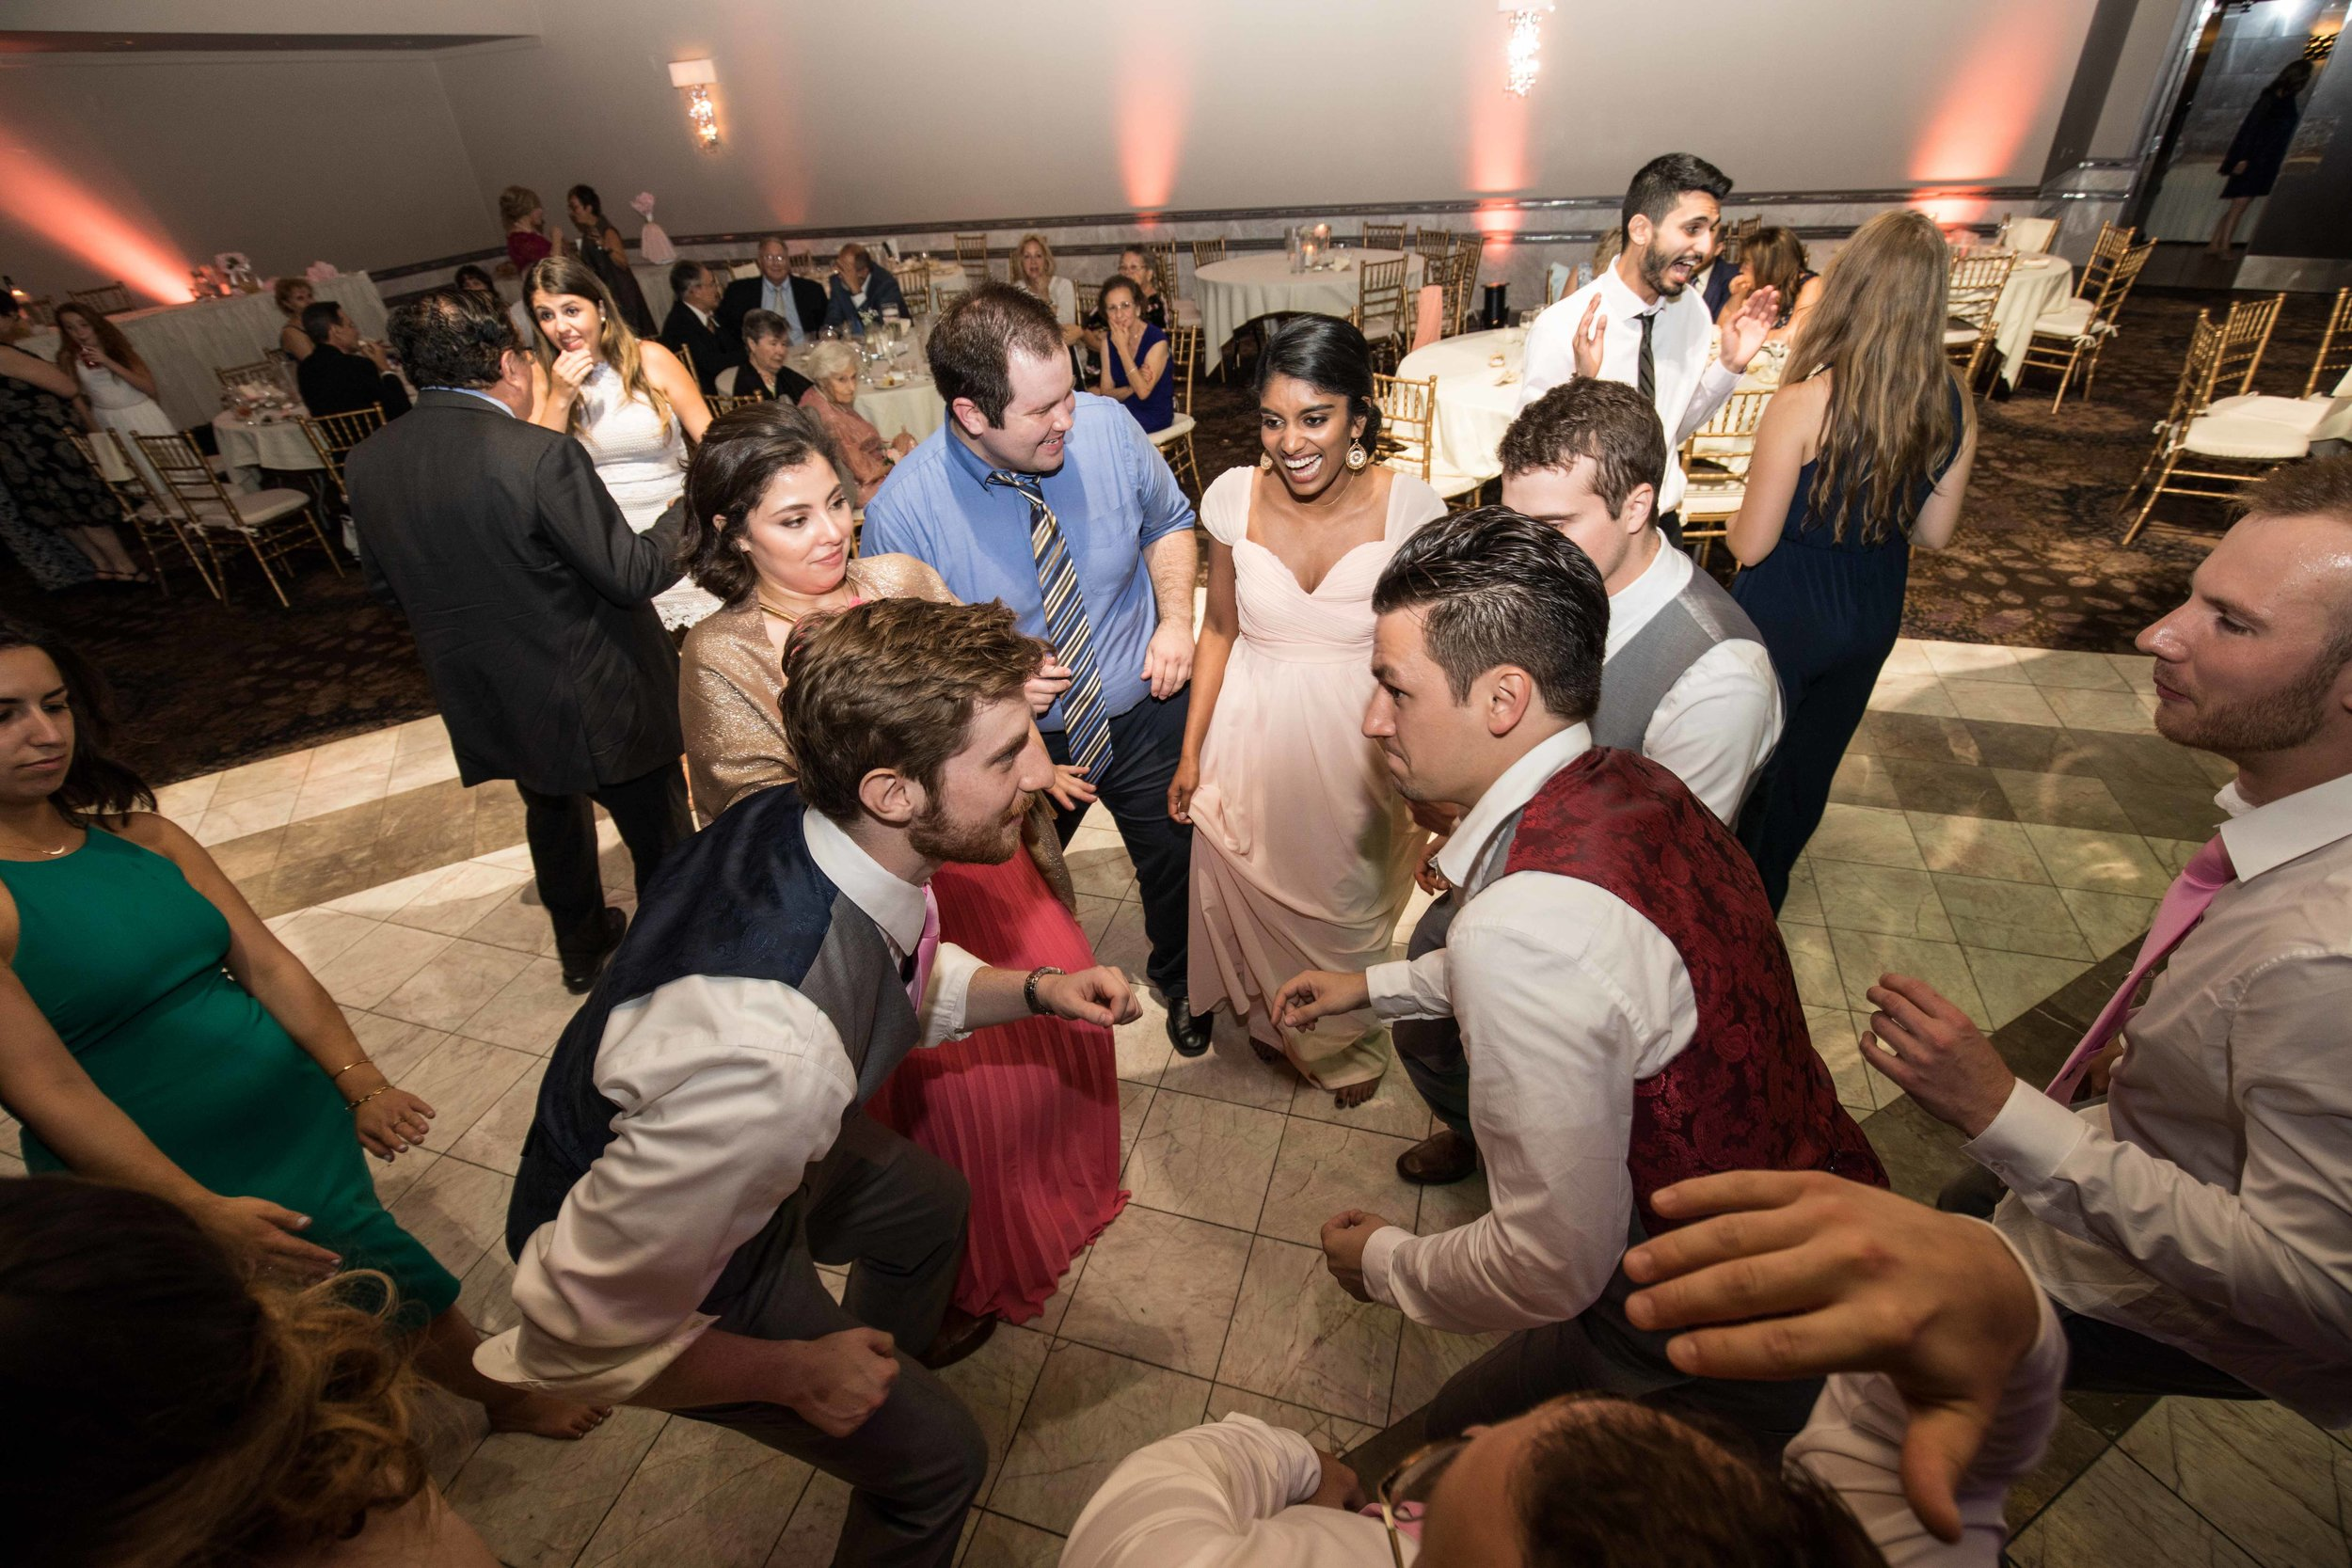 groom dancing with groomsmen and wedding guests